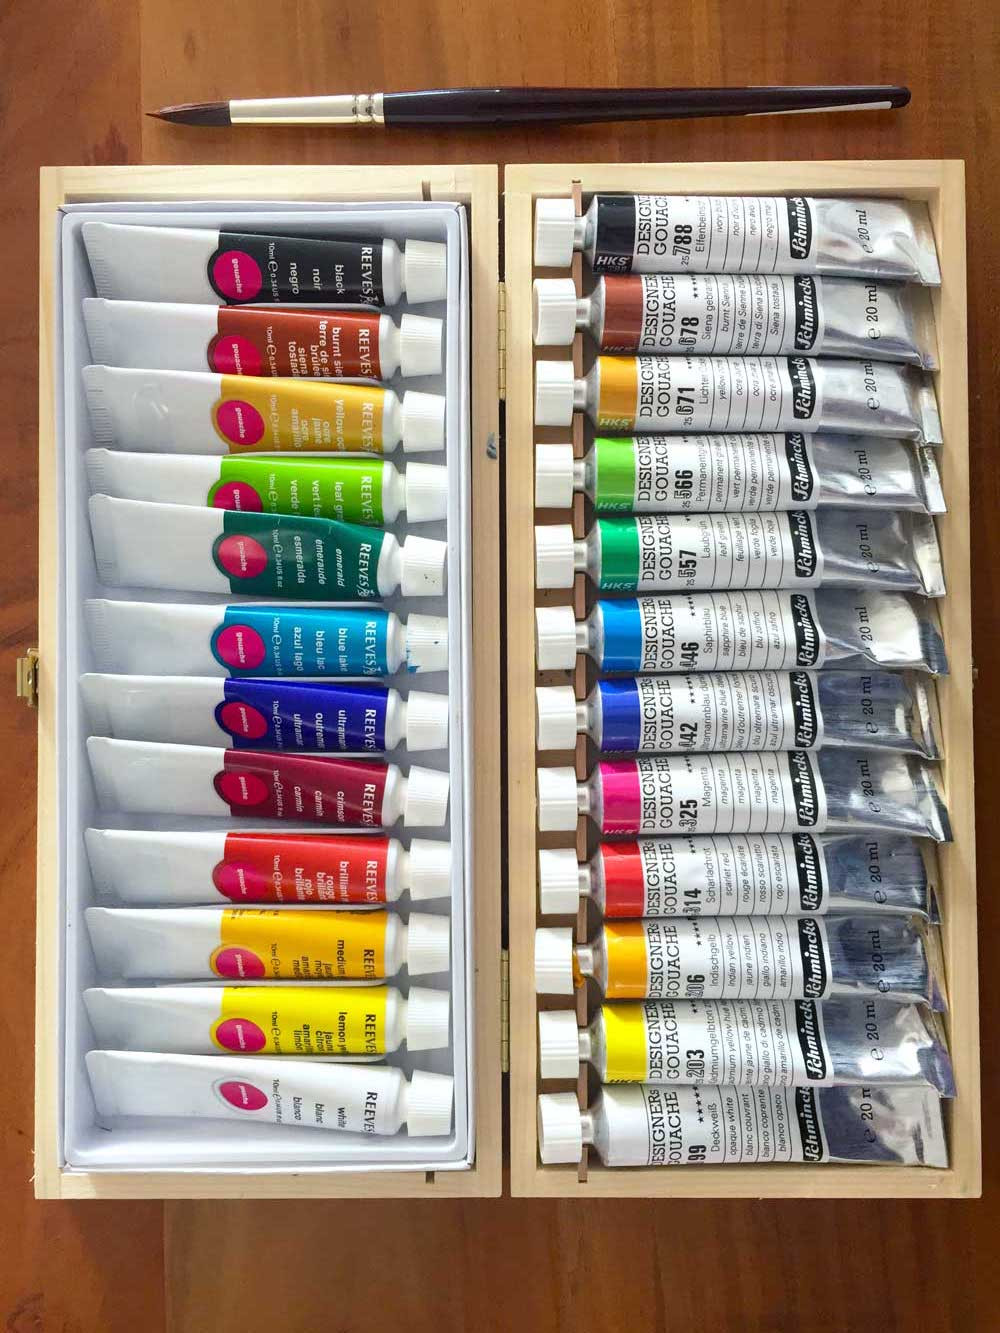 Two sets of 12- tube paints lined up in their boxes on a wooden table and a brush on the right side